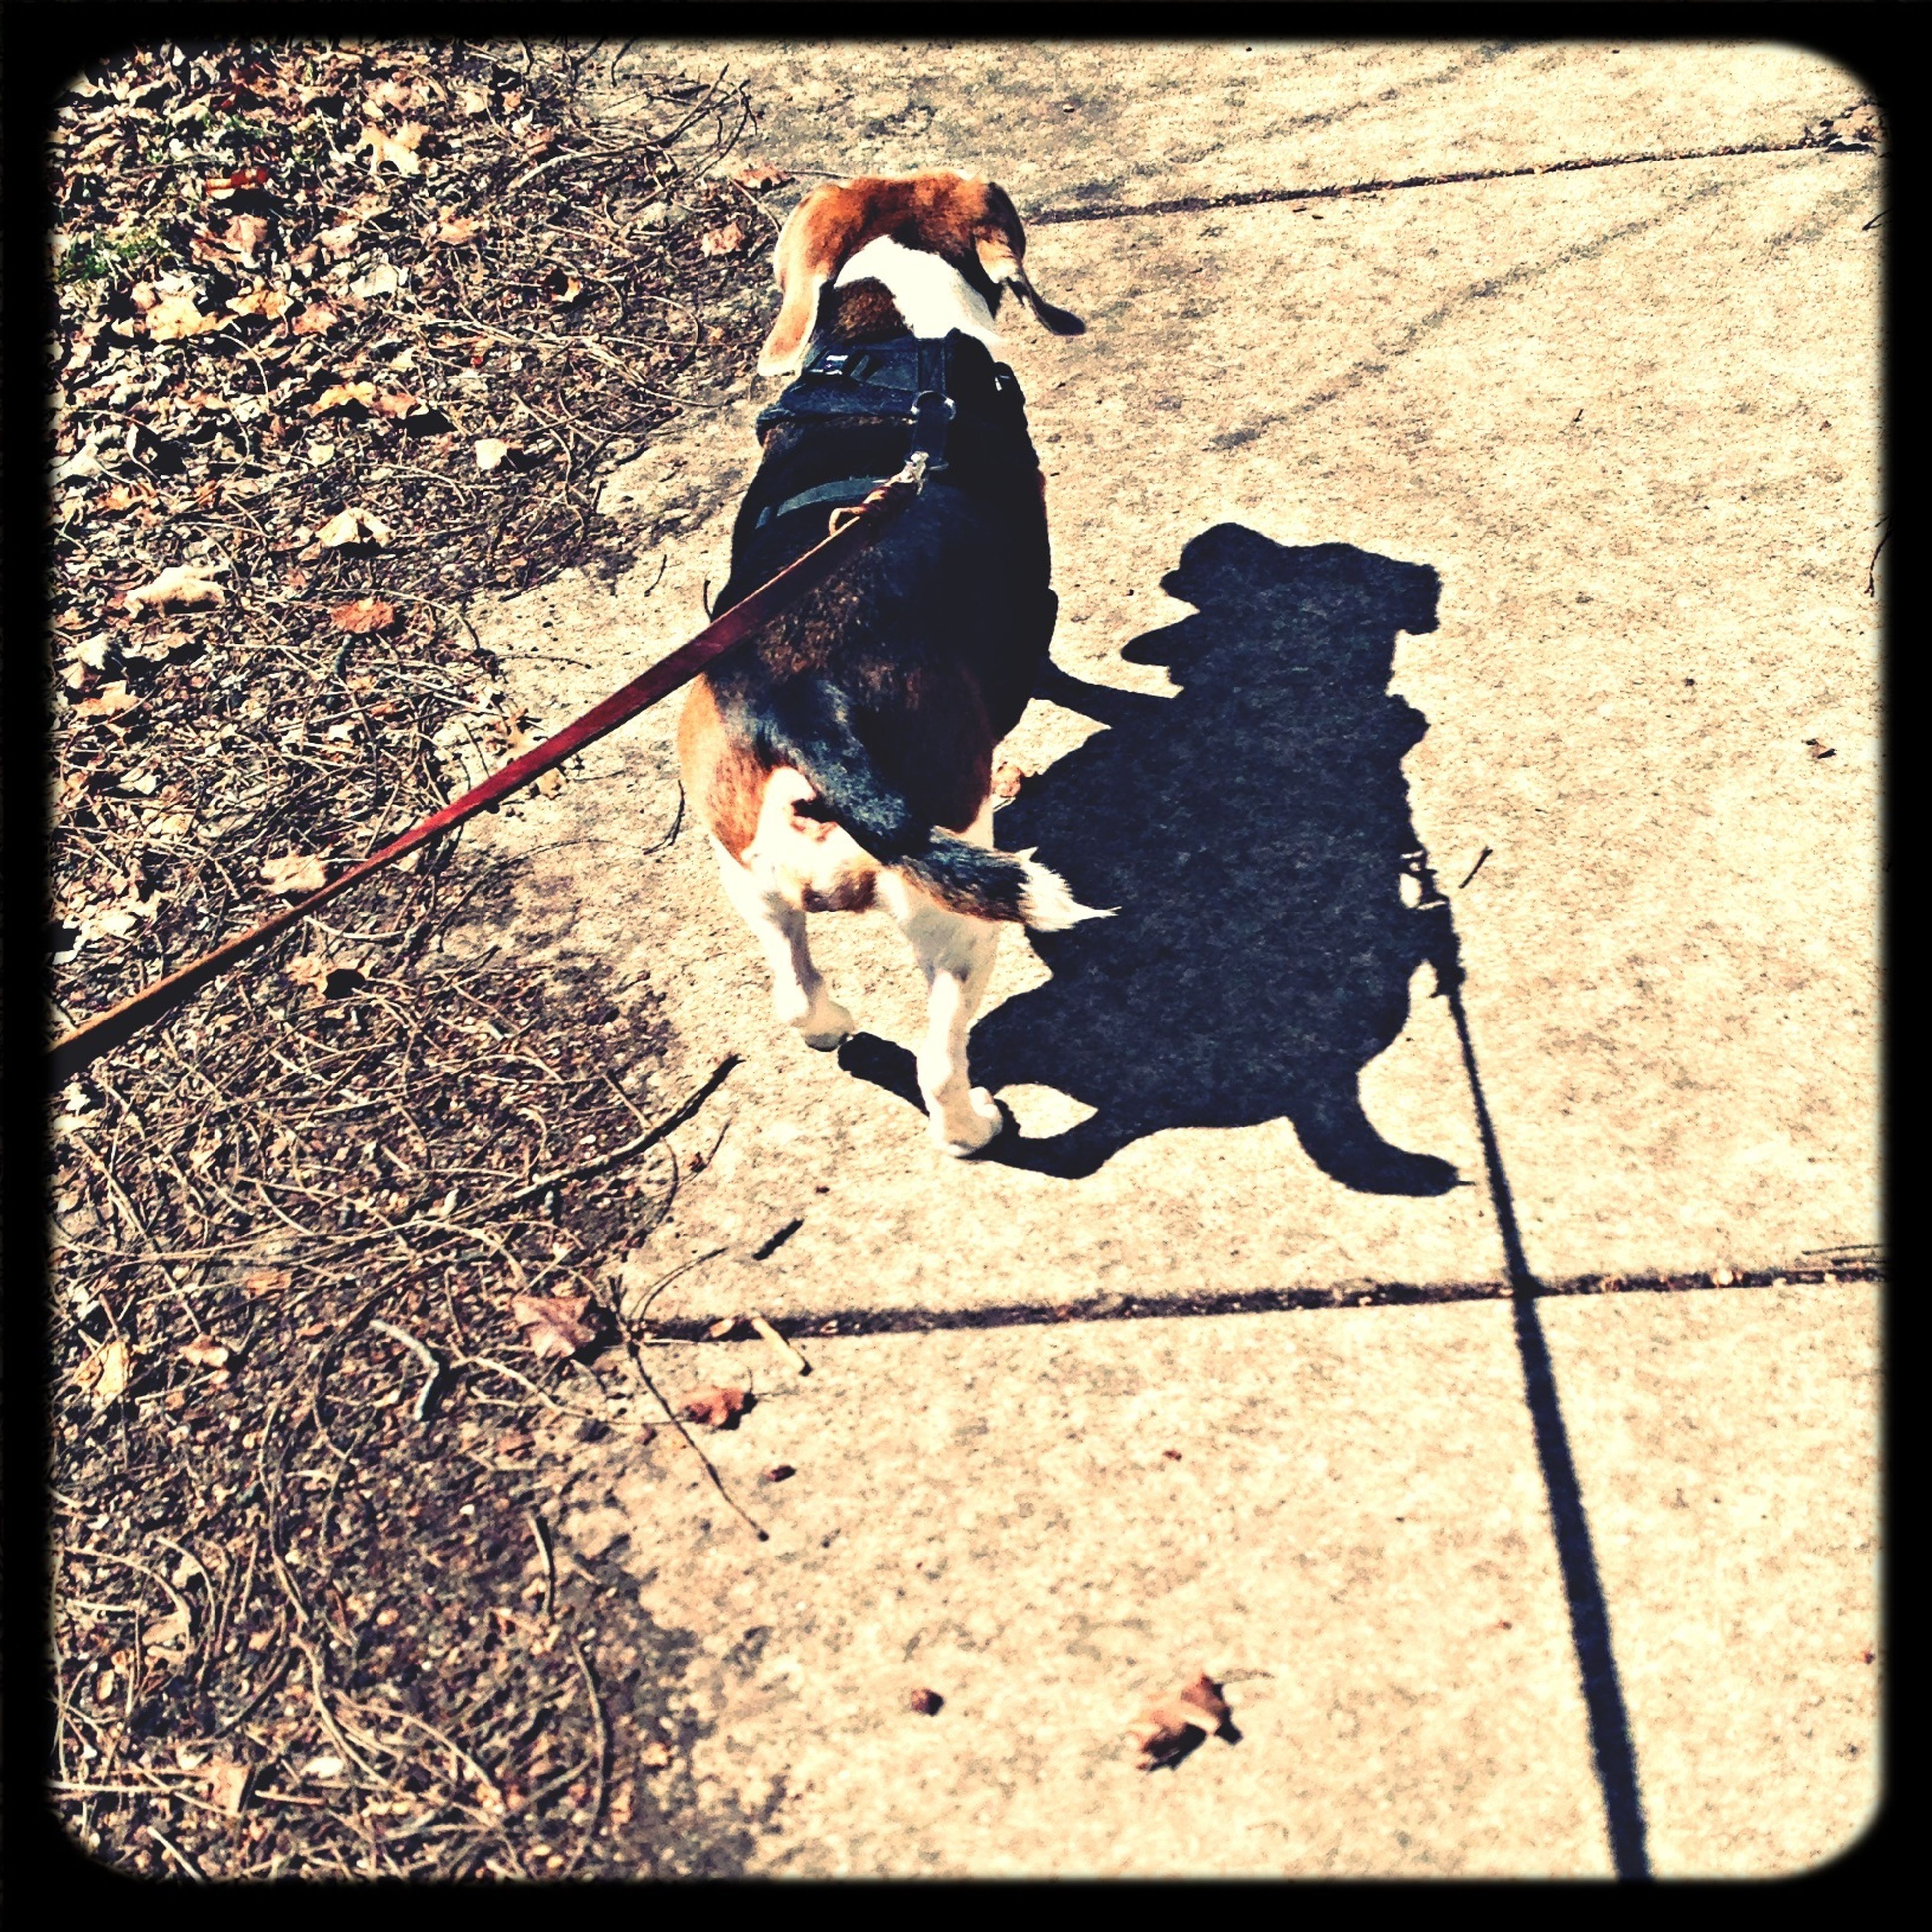 transfer print, auto post production filter, high angle view, street, sidewalk, shadow, outdoors, animal themes, men, day, lifestyles, ground, cobblestone, sunlight, road, one animal, full length, low section